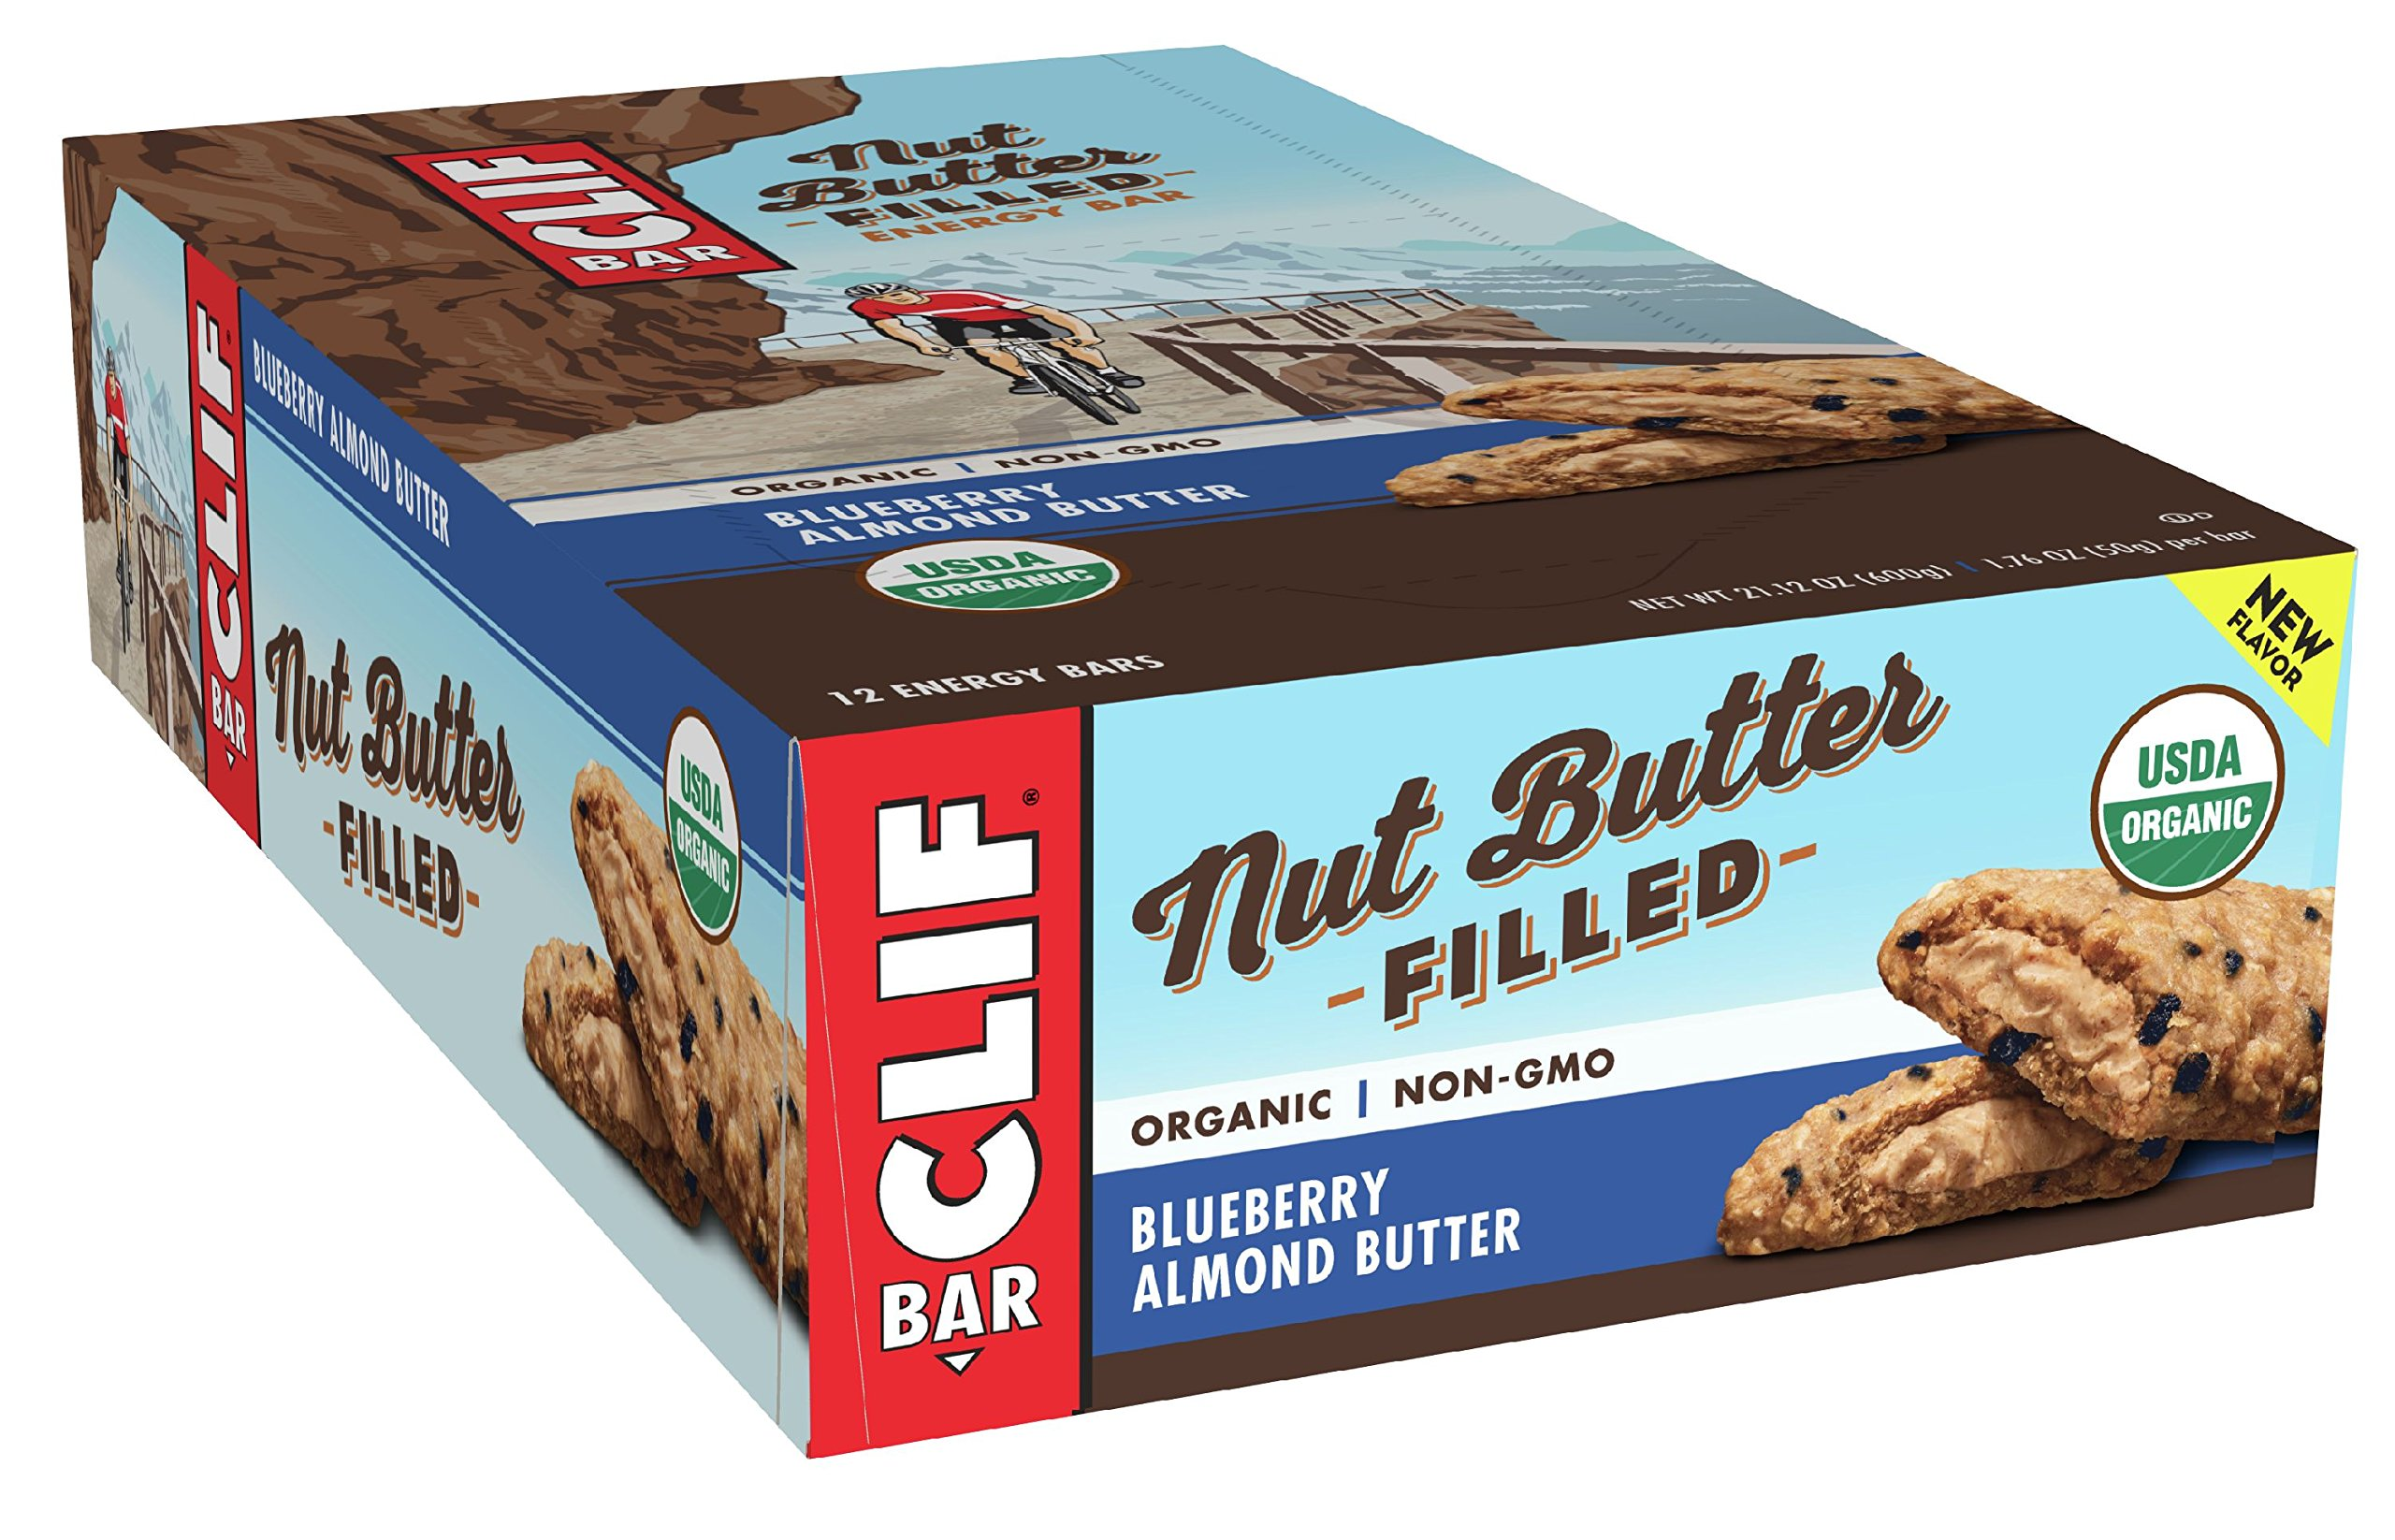 CLIF Nut Butter Filled - Organic Energy Bar - Blueberry Almond Butter - (1.76 Ounce Protein Snack Bar, 12 Count)